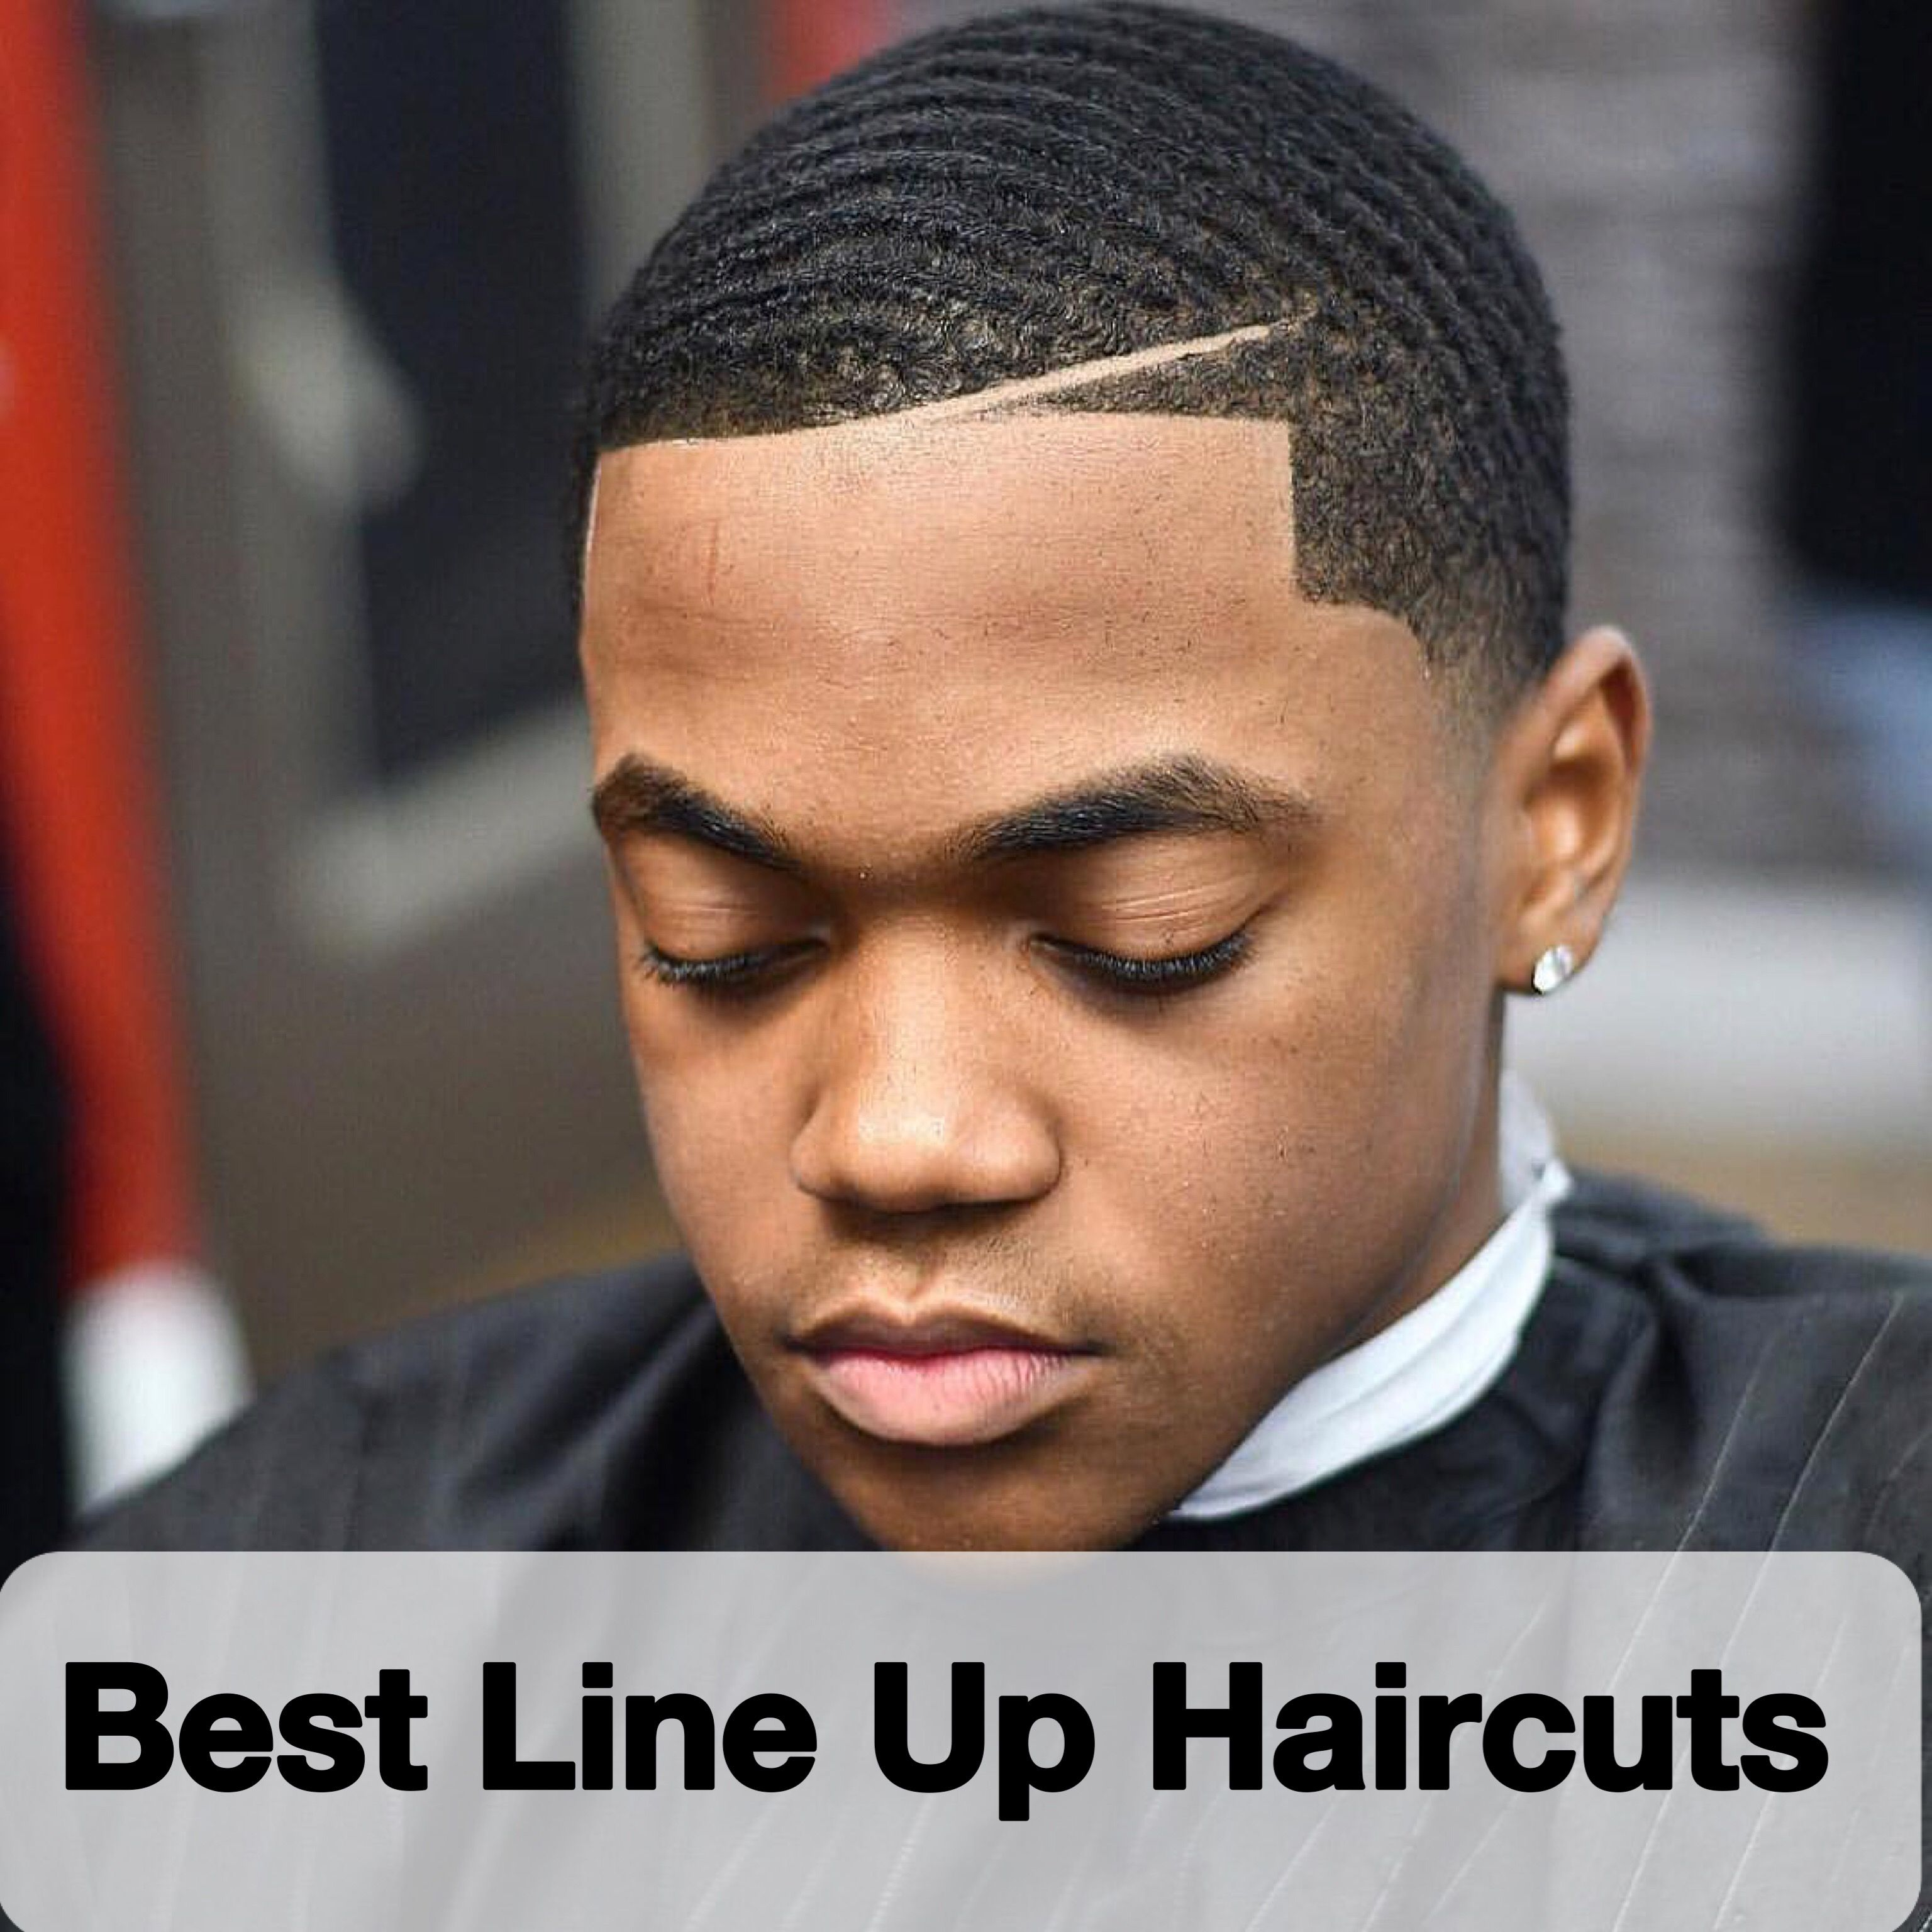 What Is Line Up Haircut 20 Best Line Up Haircuts Men S Hairstyles Waves Hairstyle Men Waves Haircut Black Man Haircut Fade